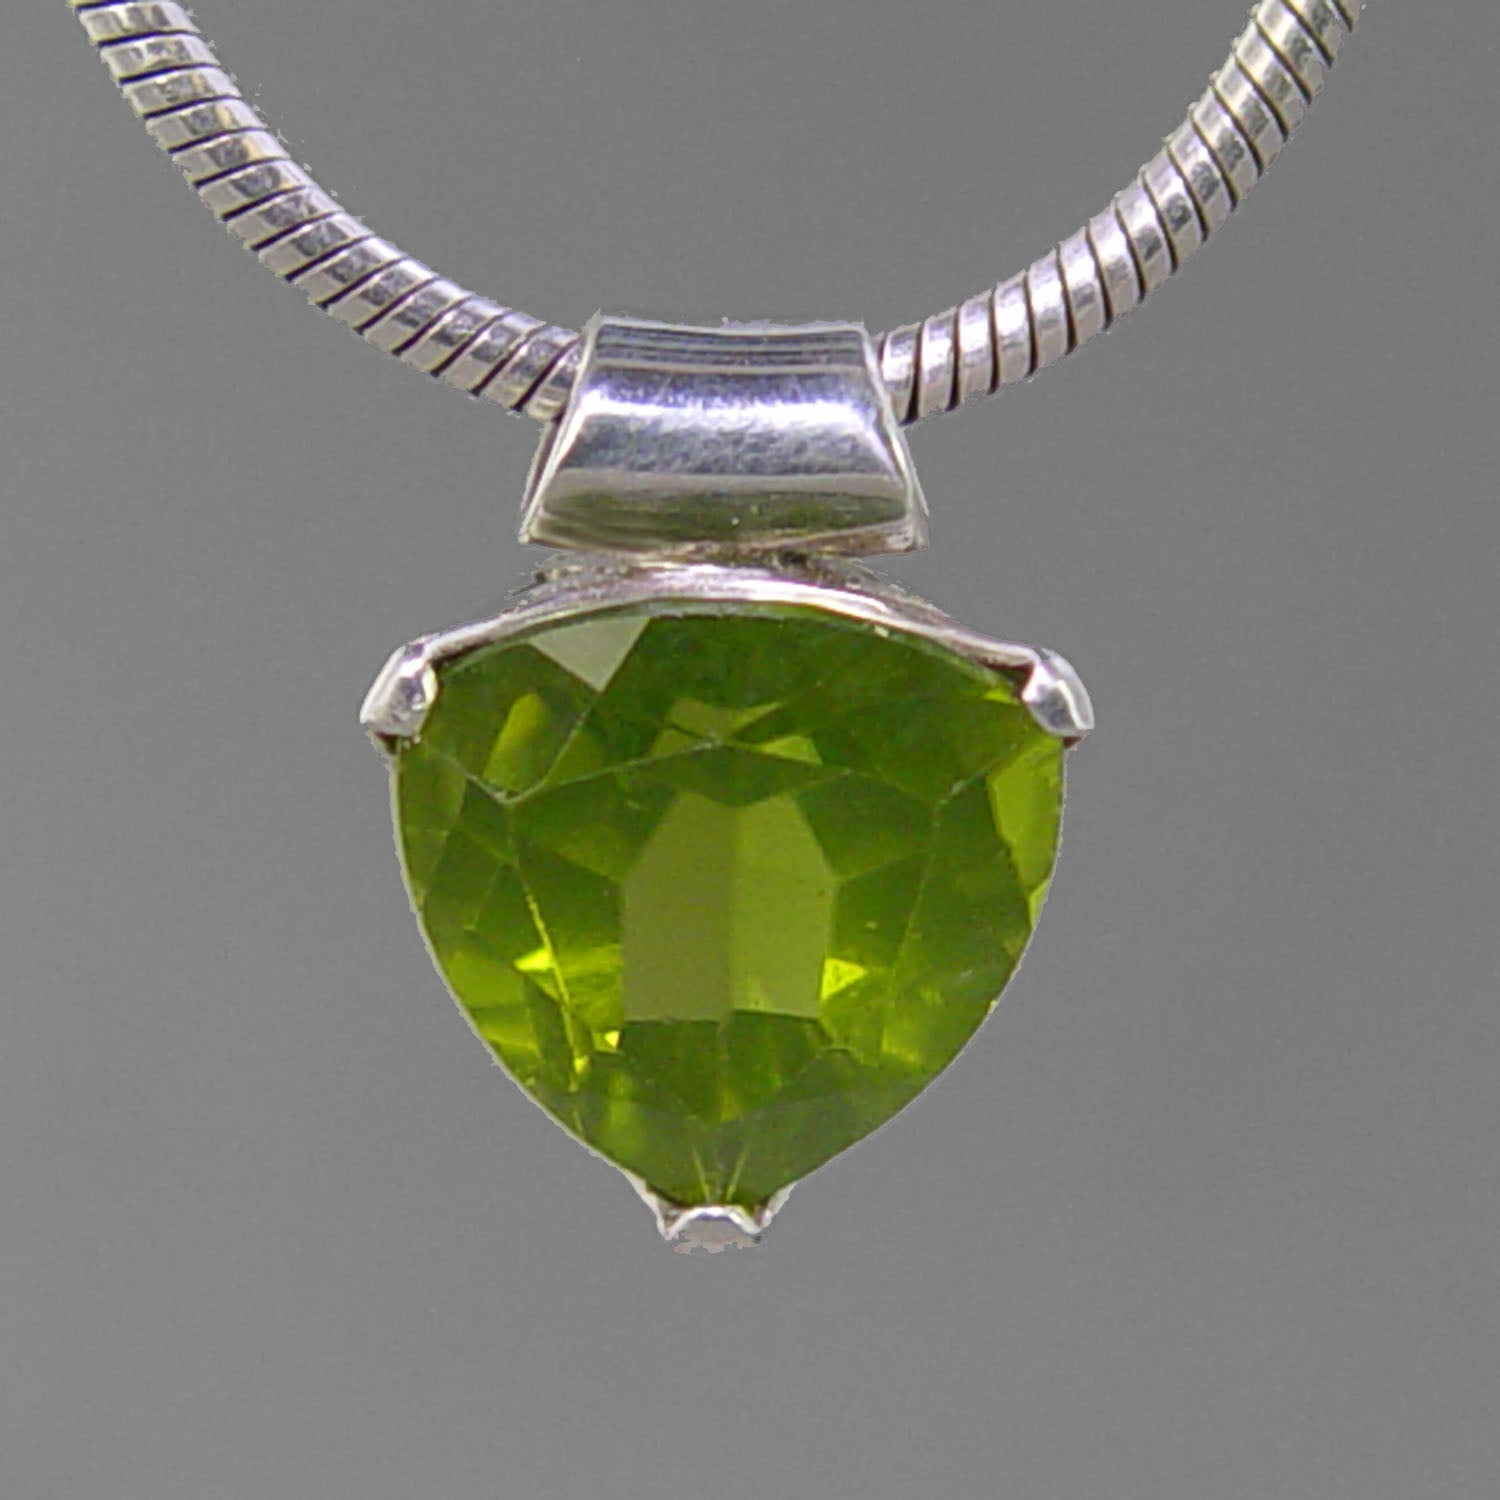 Peridot 6.76 ct Faceted Trillion Cut Sterling Silver Pendant